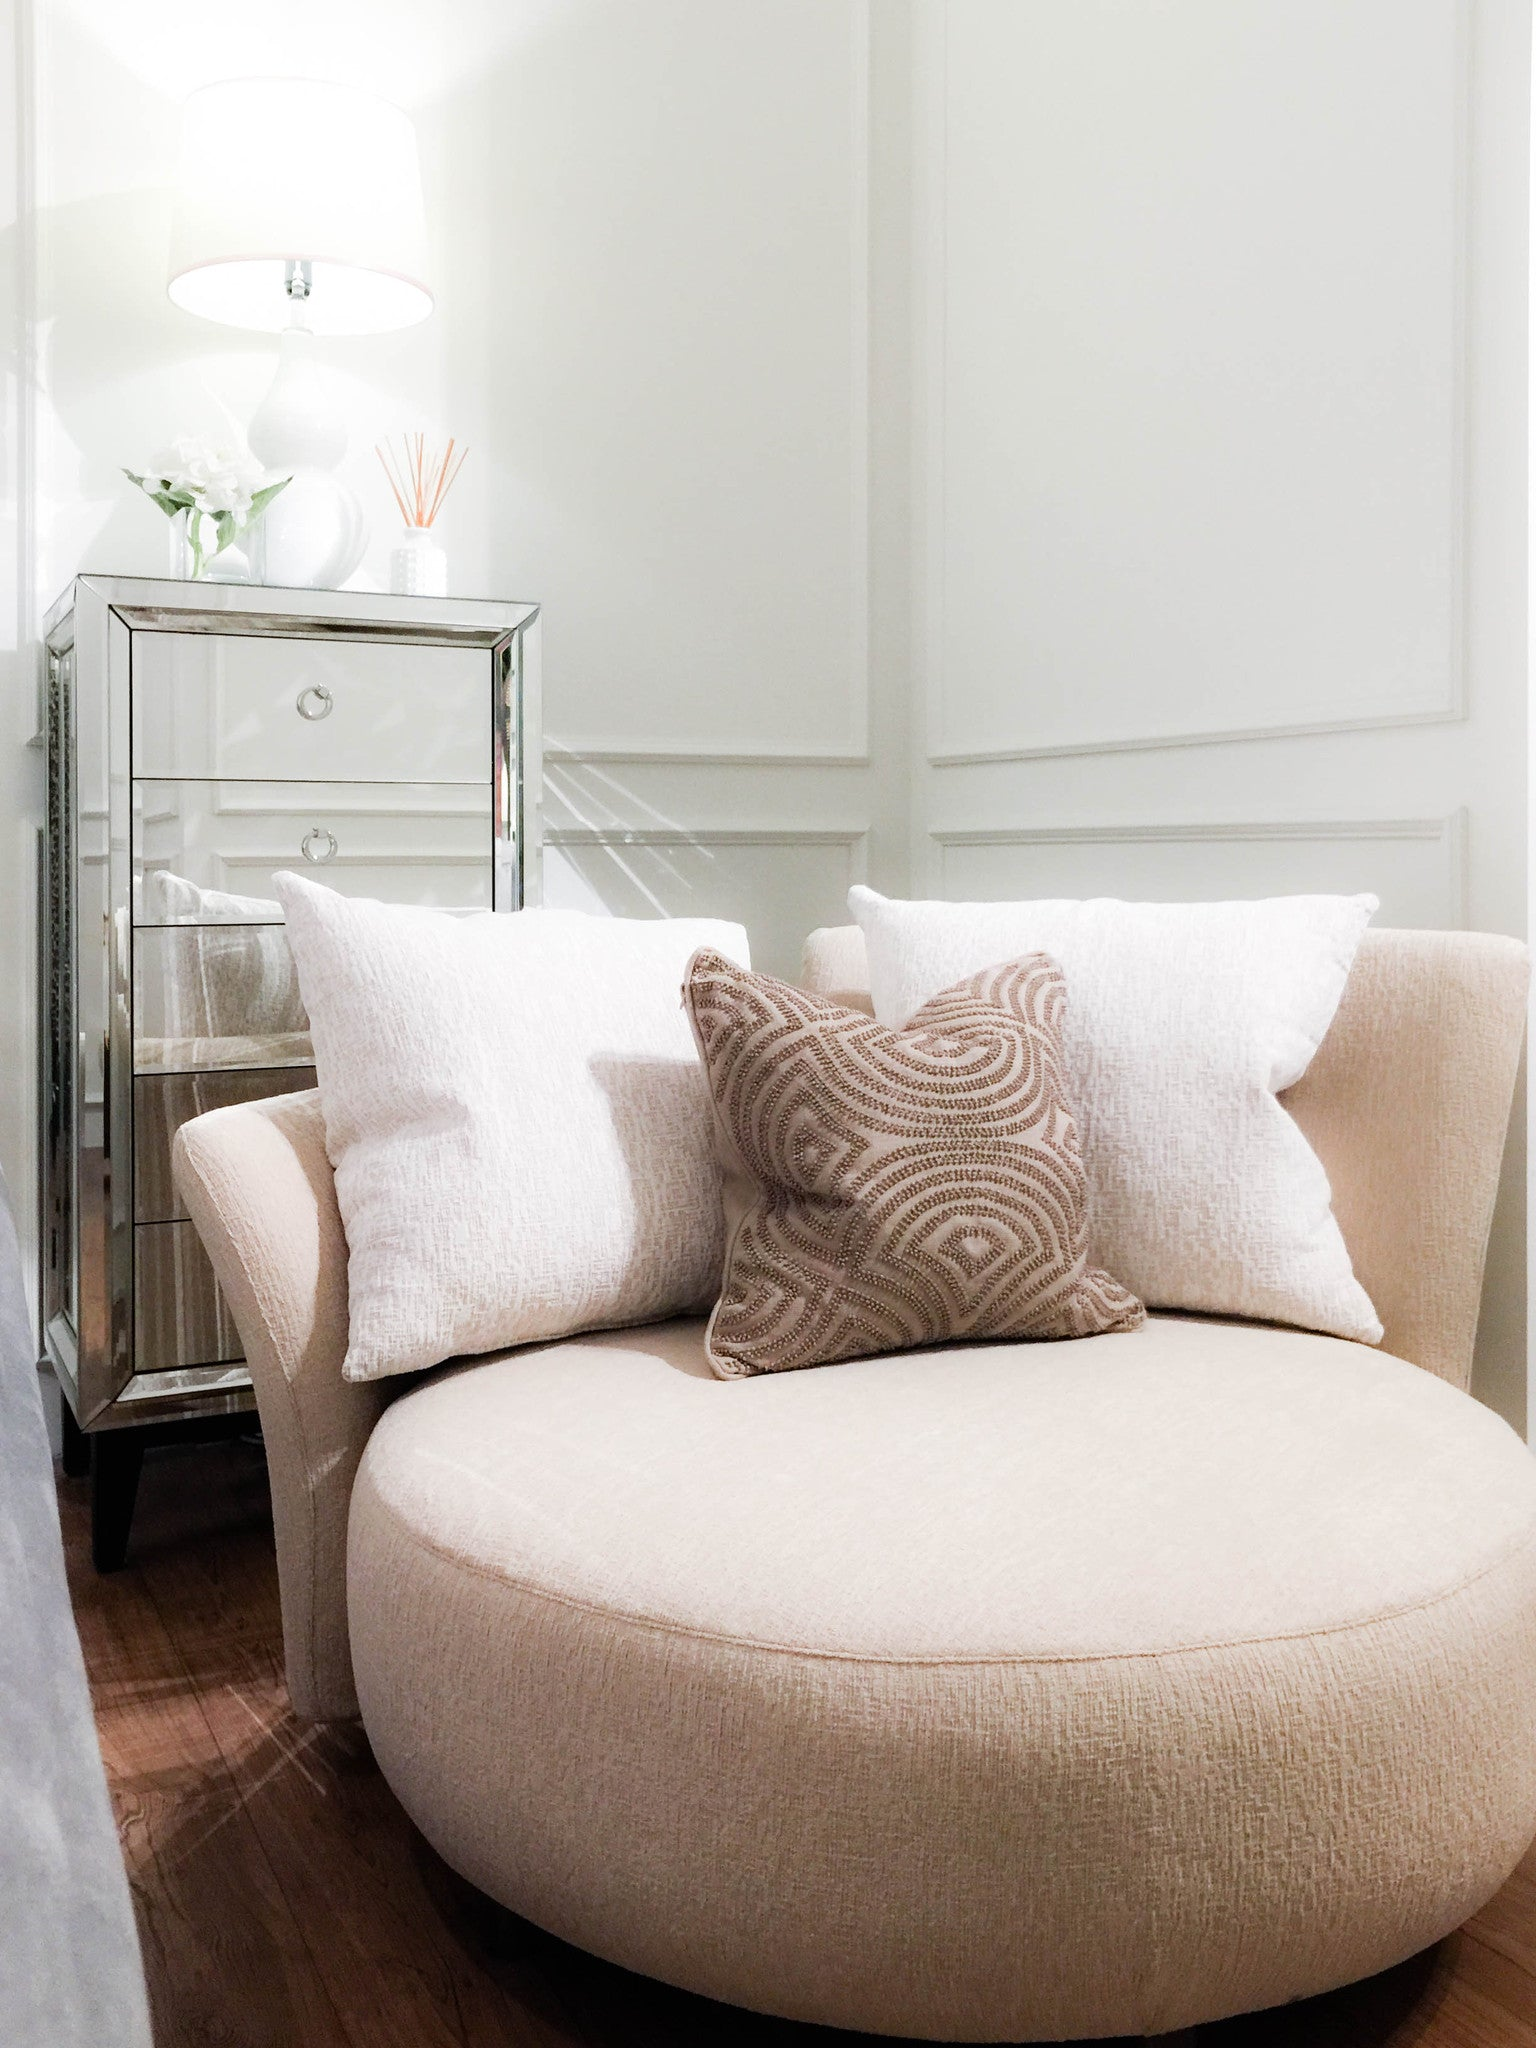 ... Round Sofa Sits Beautifully With Two Big White Cushions And Candice  Olson Beaded Cushion Next To